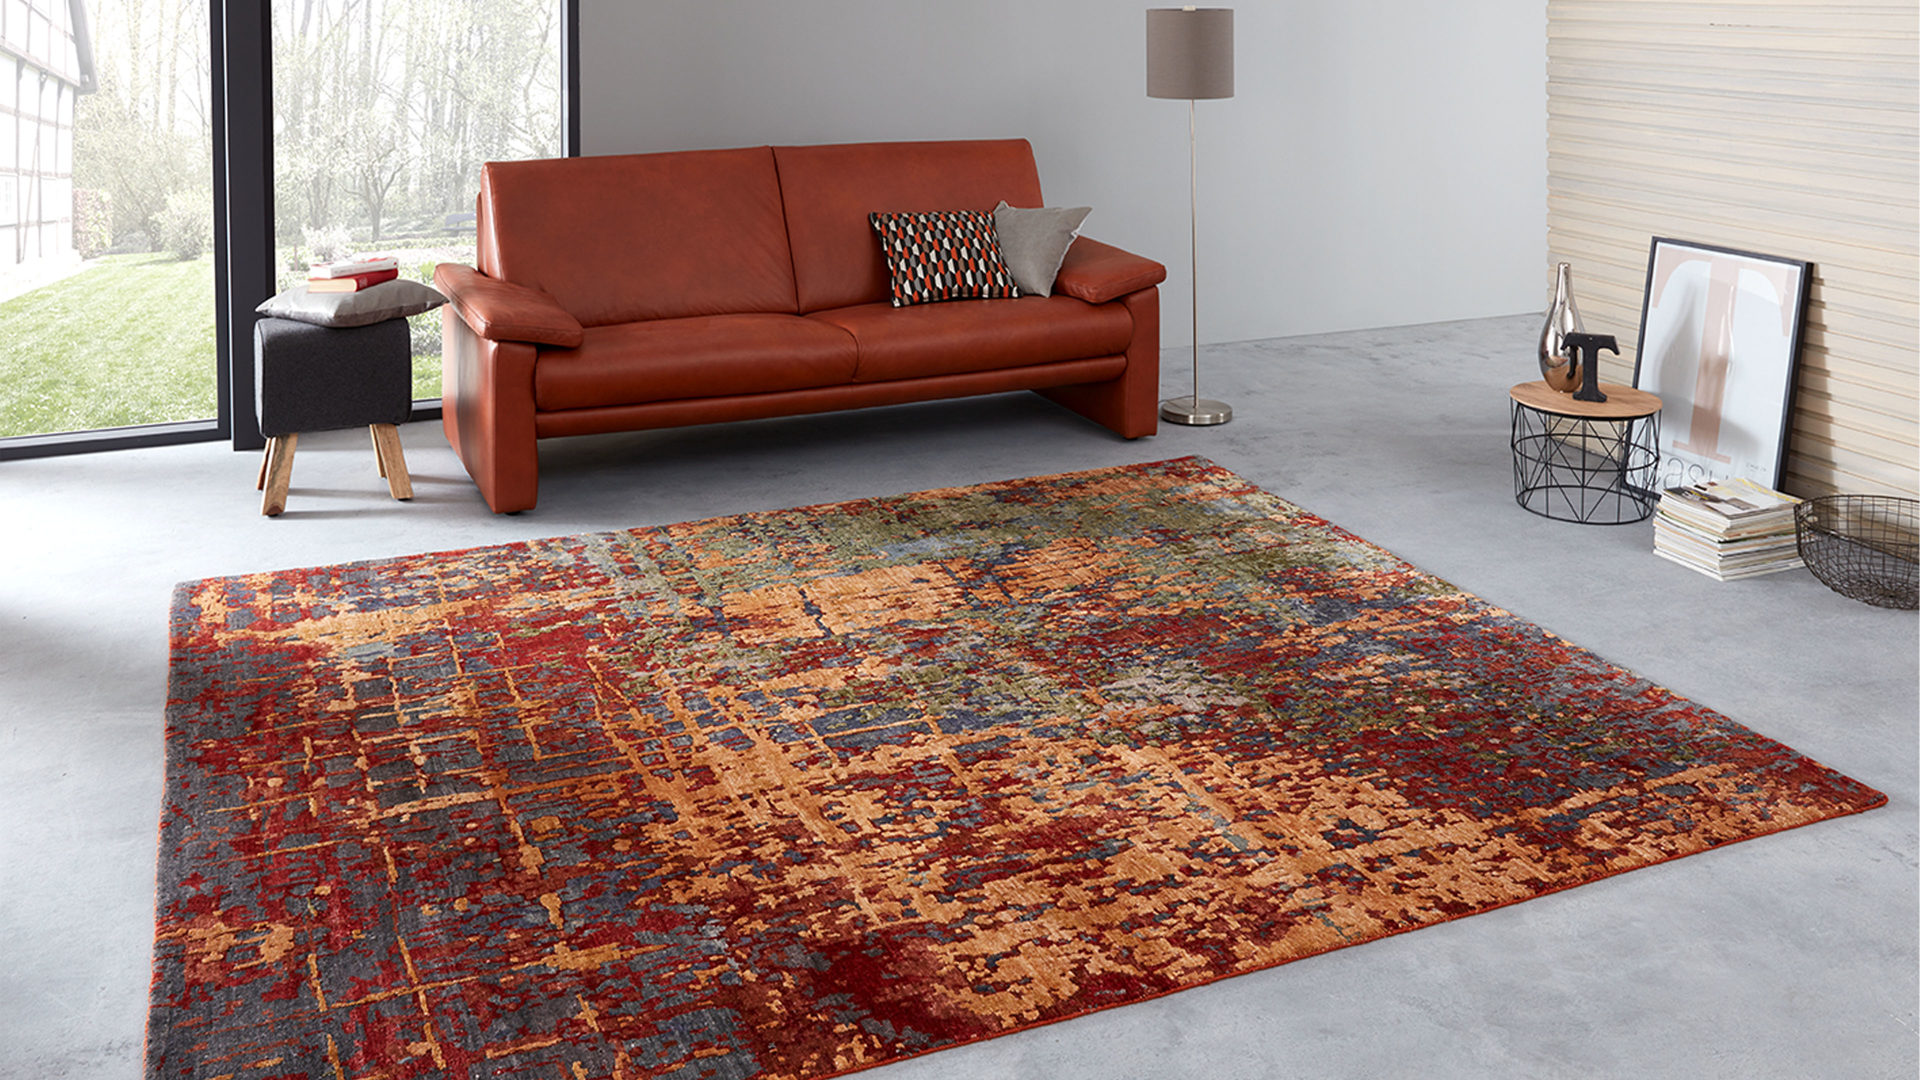 Designerteppich Interliving aus Textil in Orange Interliving Teppich Serie T-8340 Rostfarben gemustert – ca. 250 x 300 cm